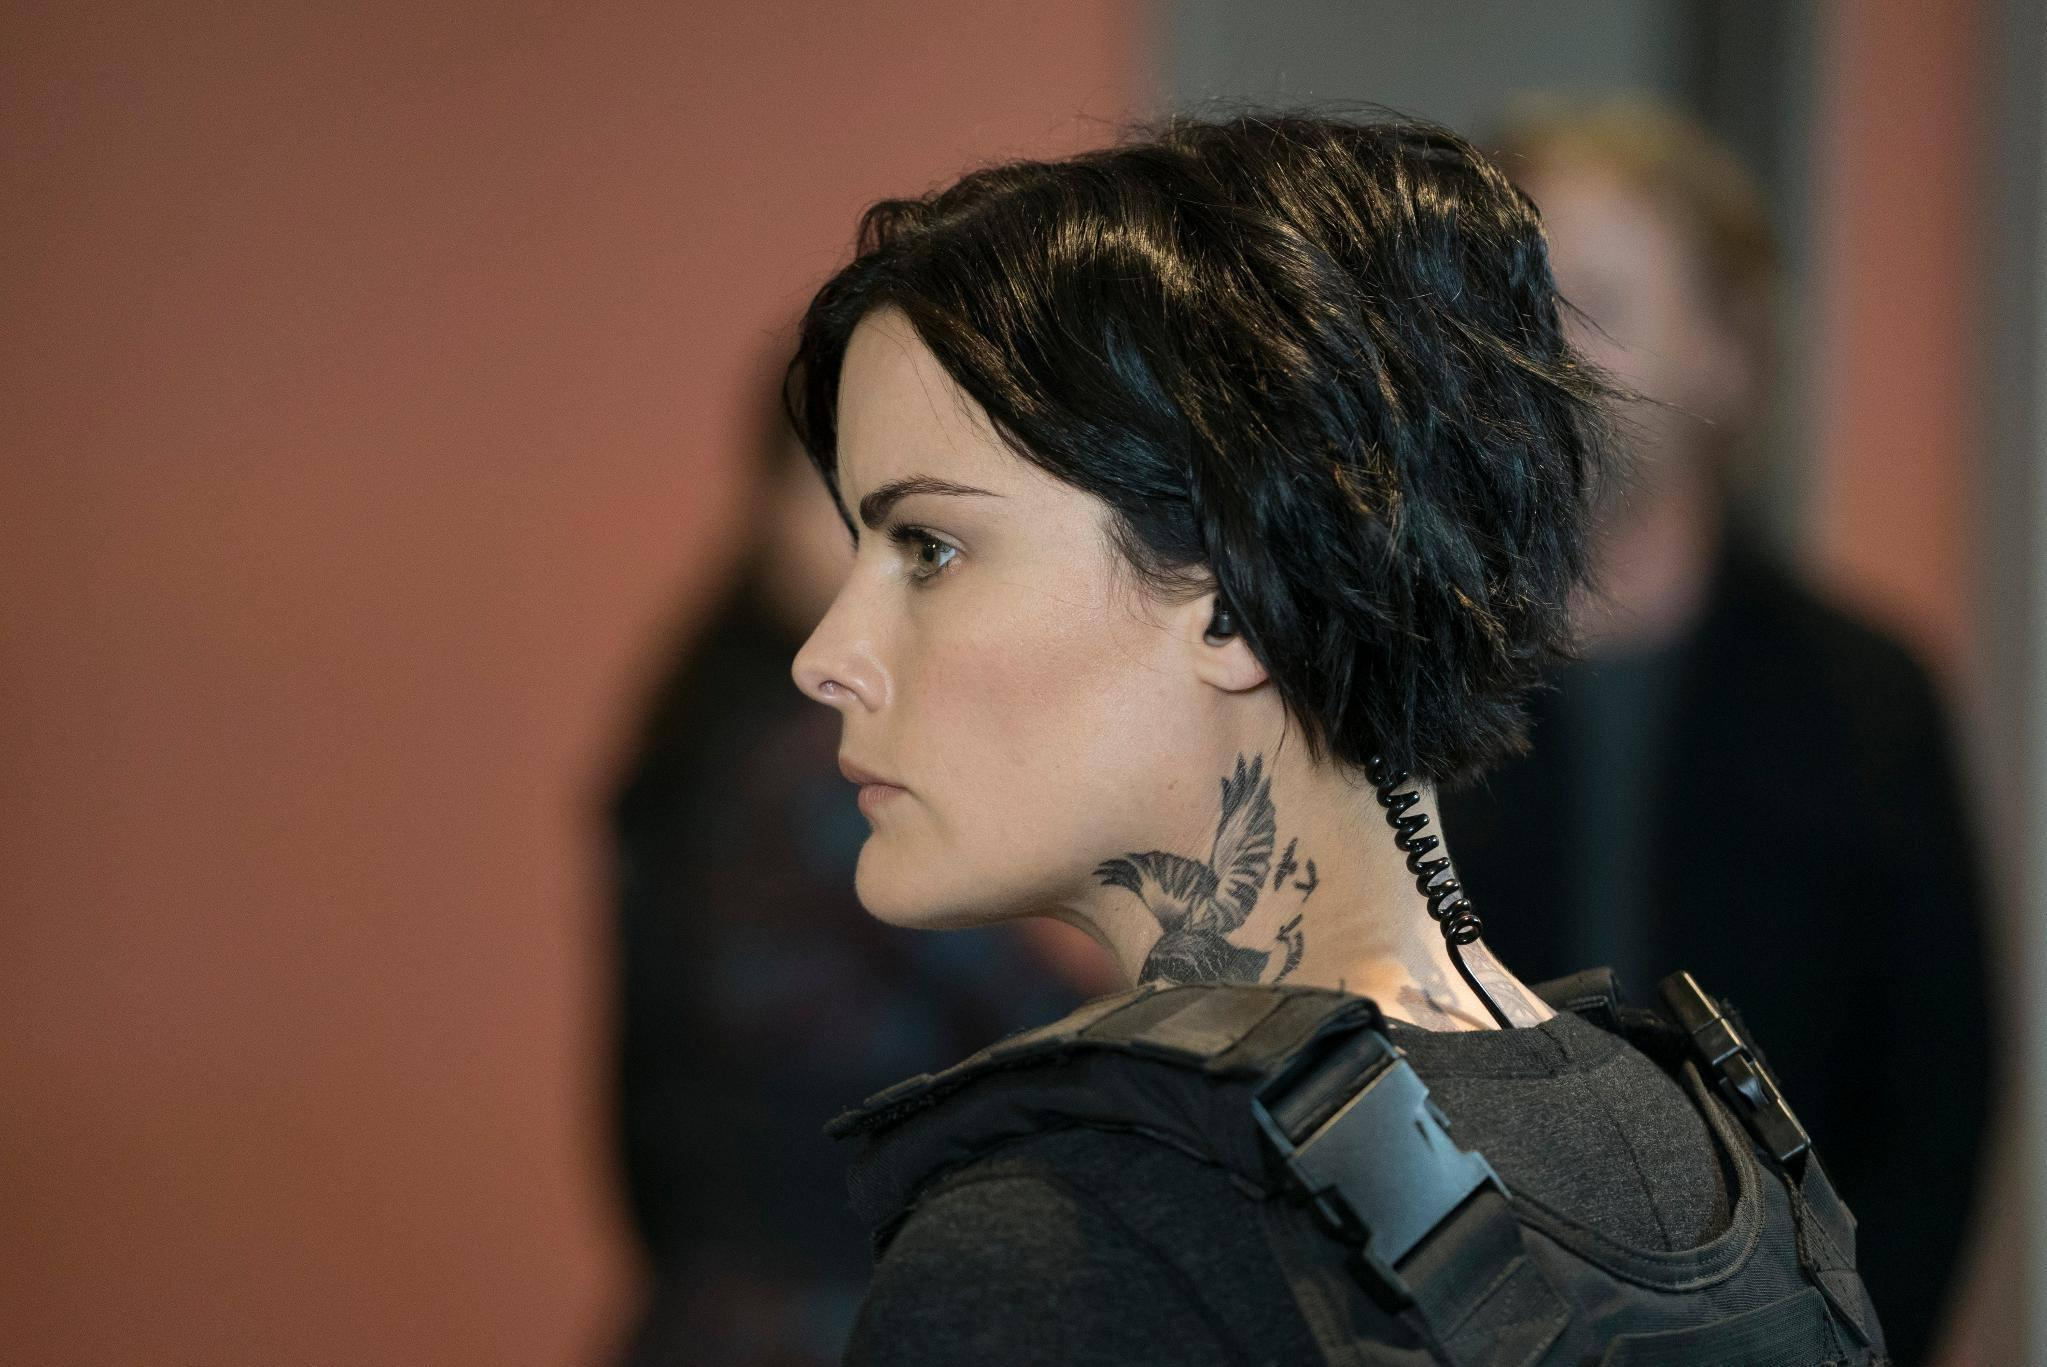 airdates blindspot 'blindspot' season 2 air date, spoilers: jamie alexander reveals tension between jane and kurt weller will fans get to see jane and kurt uniting in season 2.